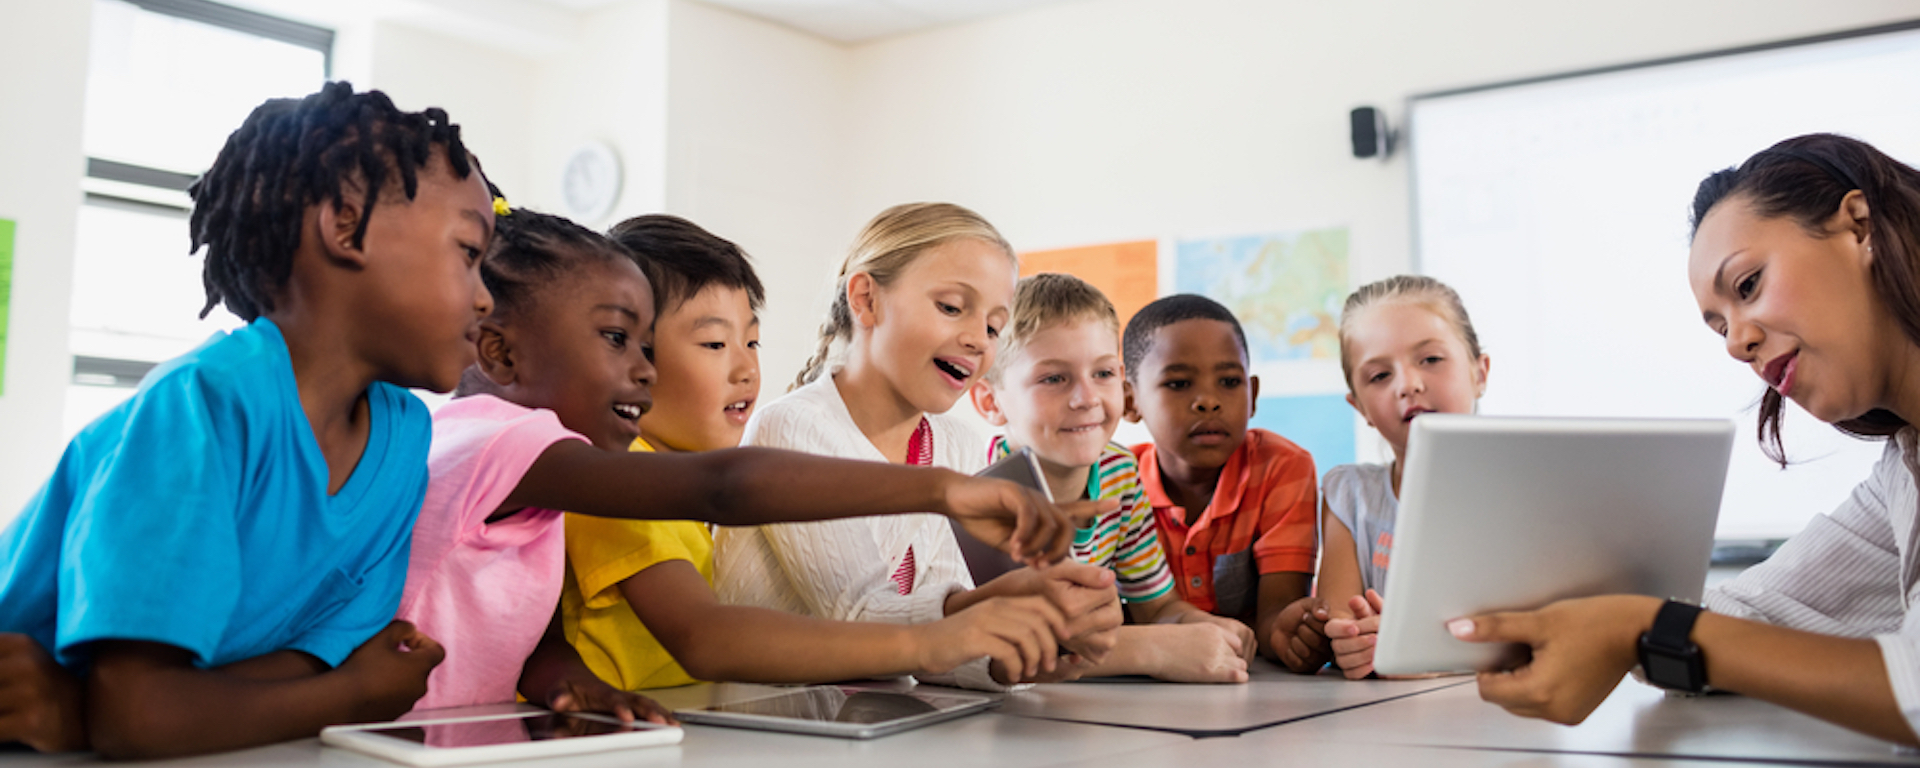 the use of technology in the classrooms Pros & cons of using technology in the elementary classroom while there are many positive aspects to technology use in the elementary classroom.